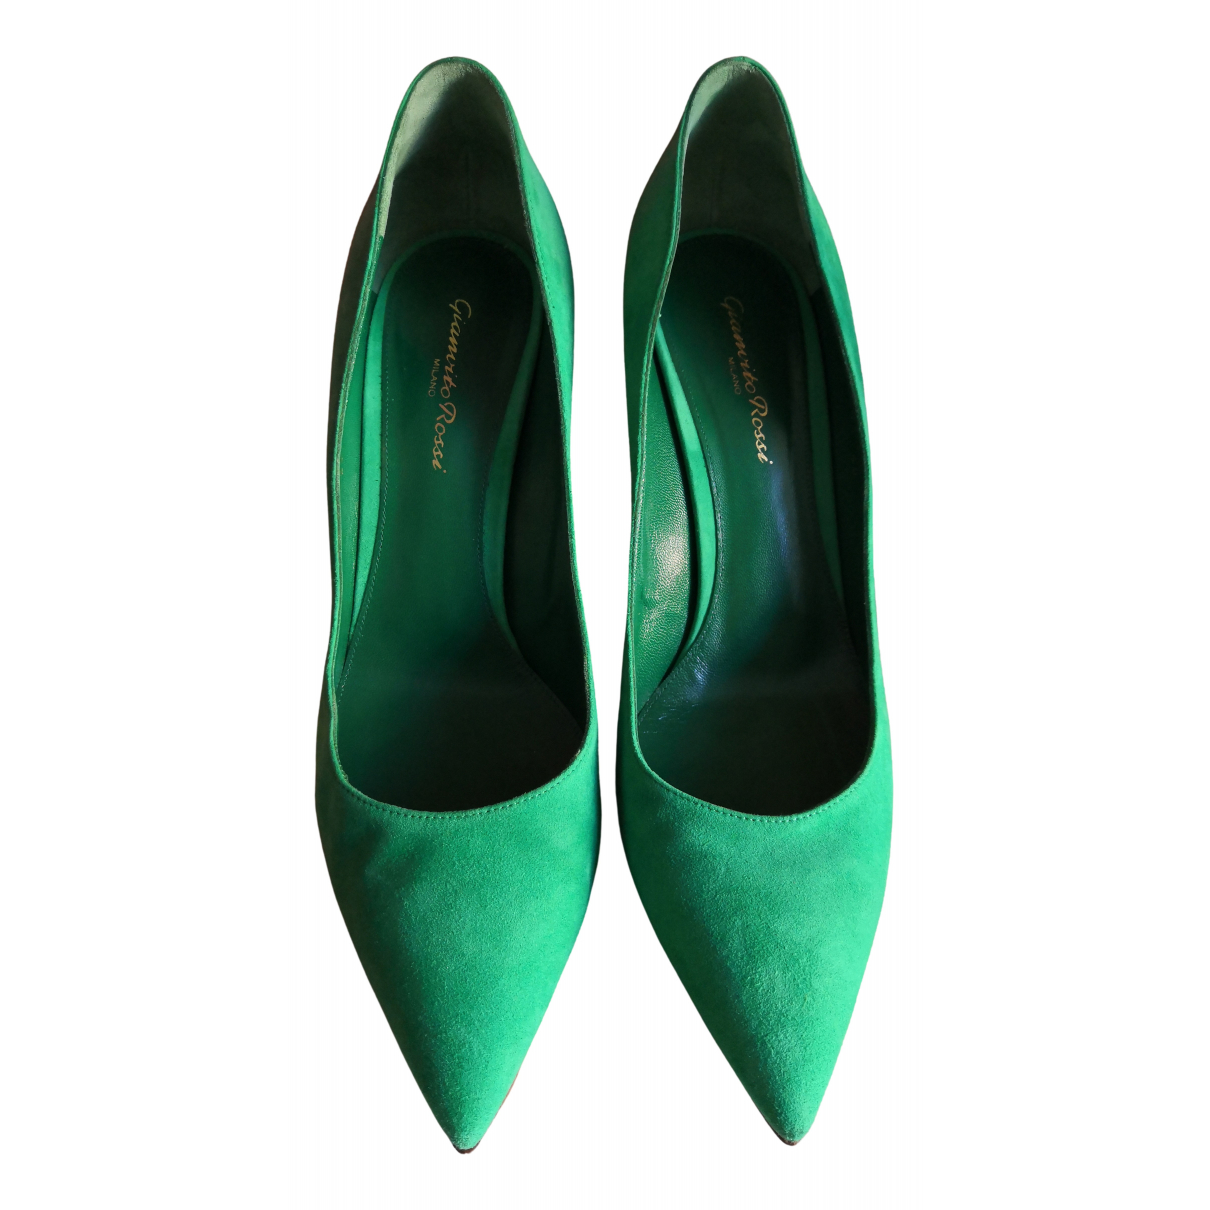 Gianvito Rossi Gianvito Green Leather Heels for Women 40 EU